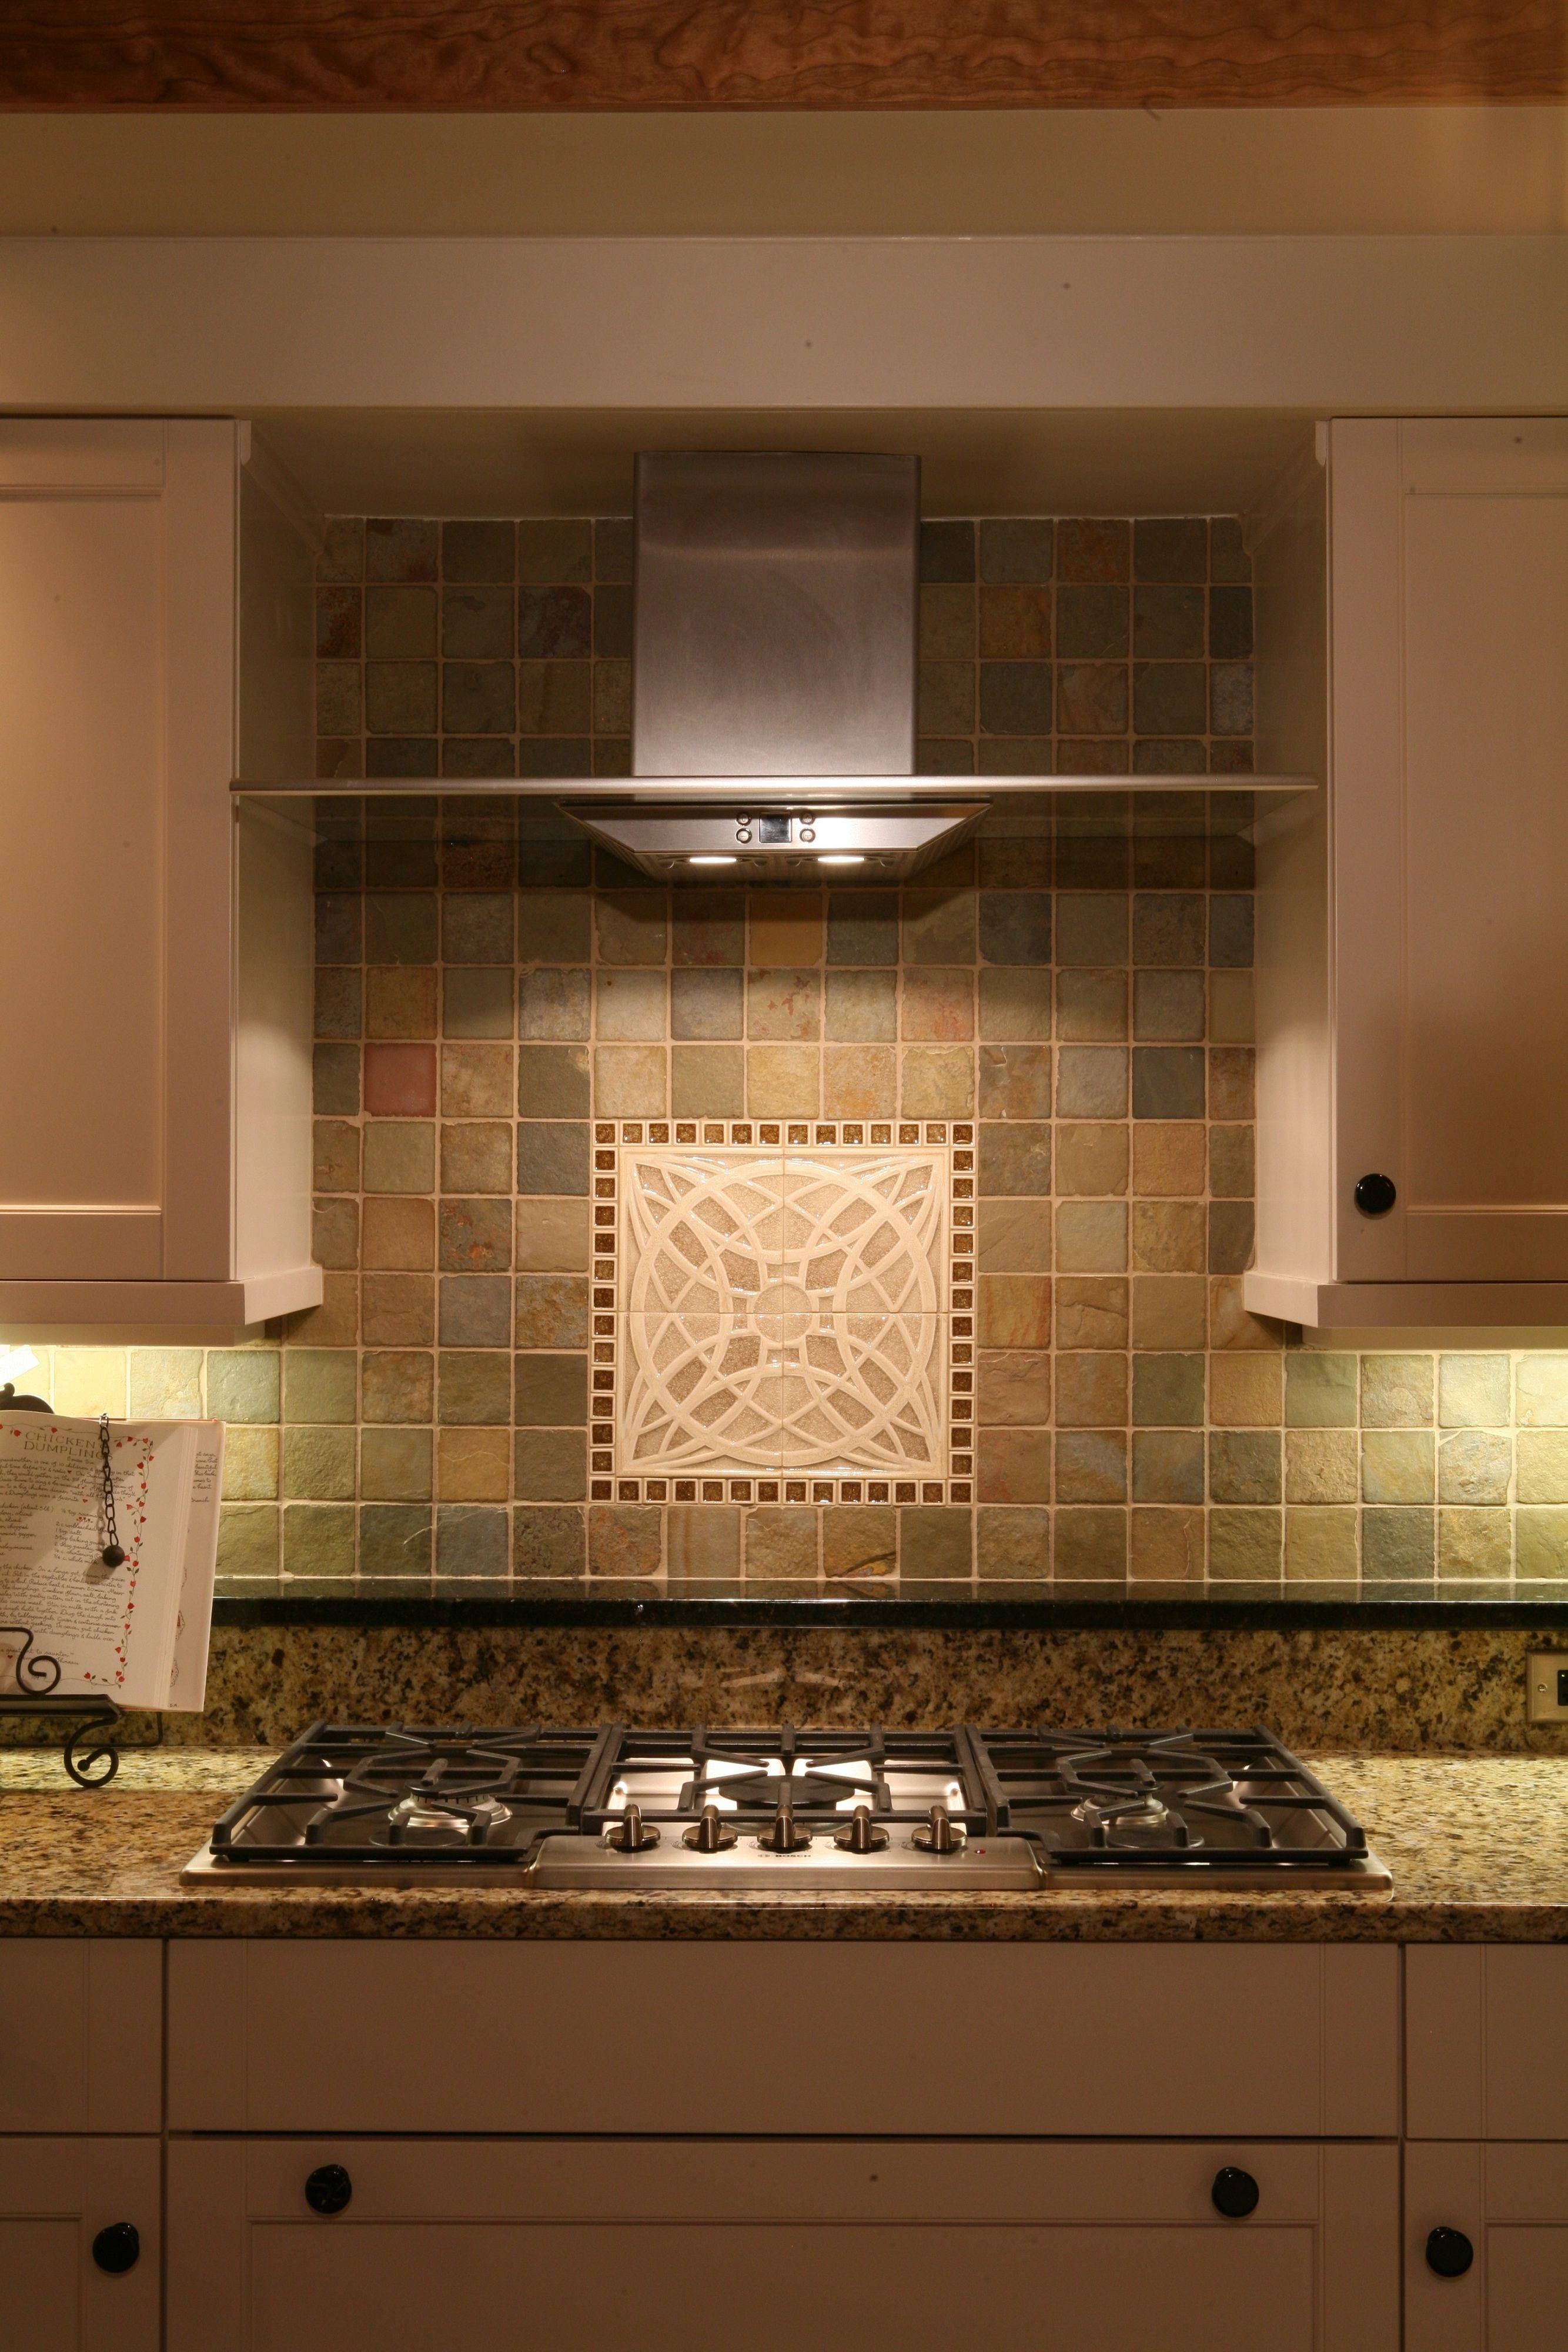 The tile detail is a focal point in the kitchen.